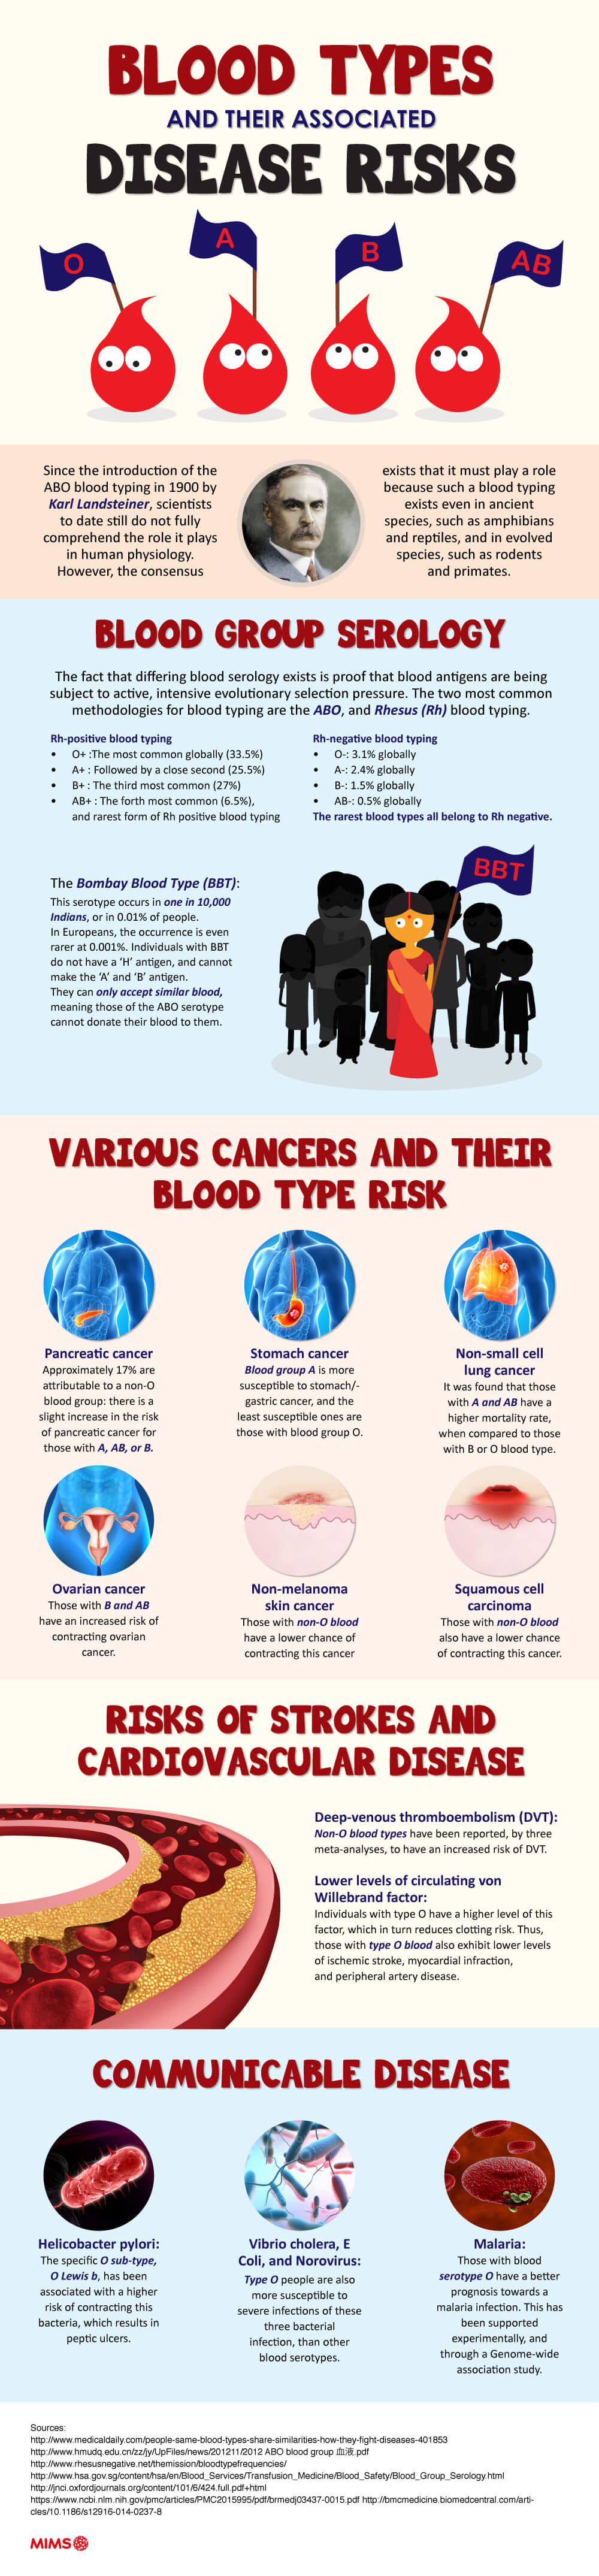 Blood types and their associated disease risks